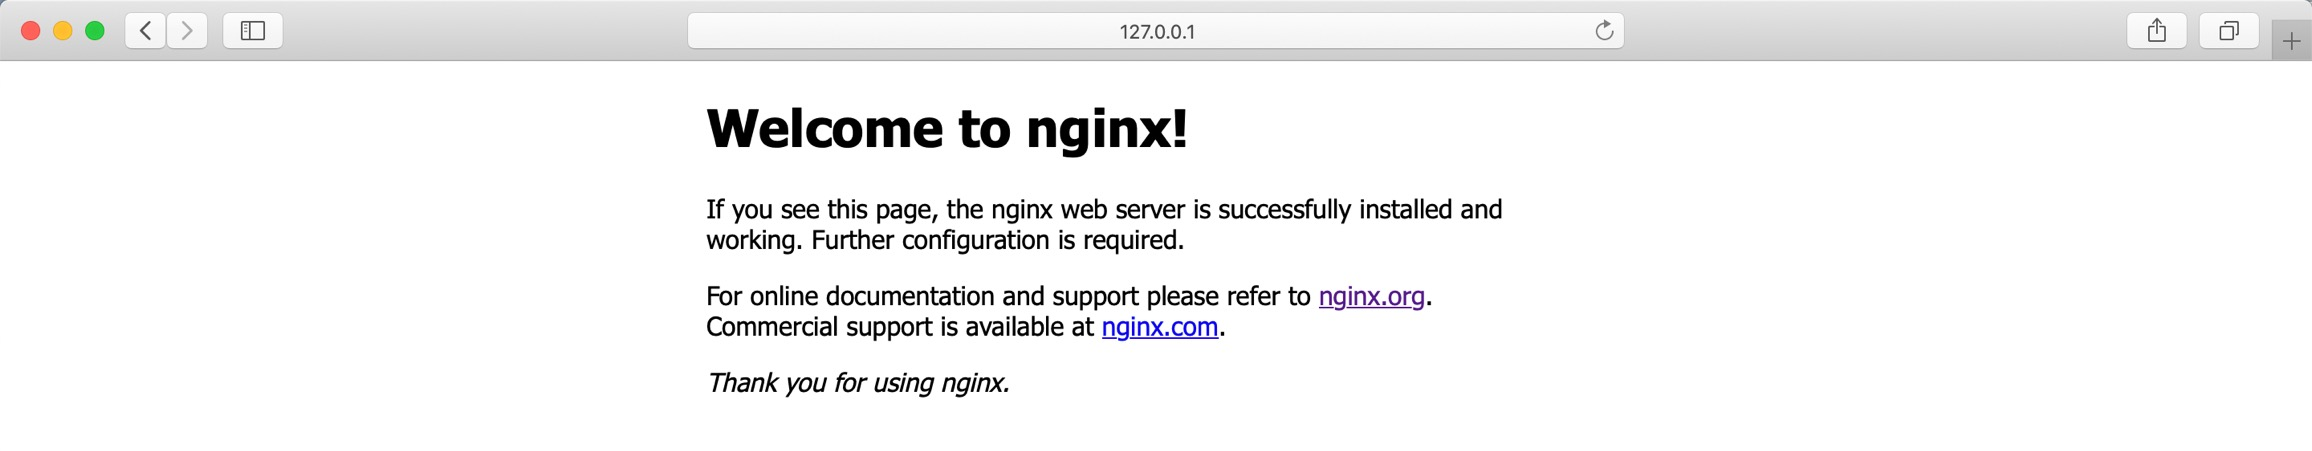 nginx-welcome.jpeg